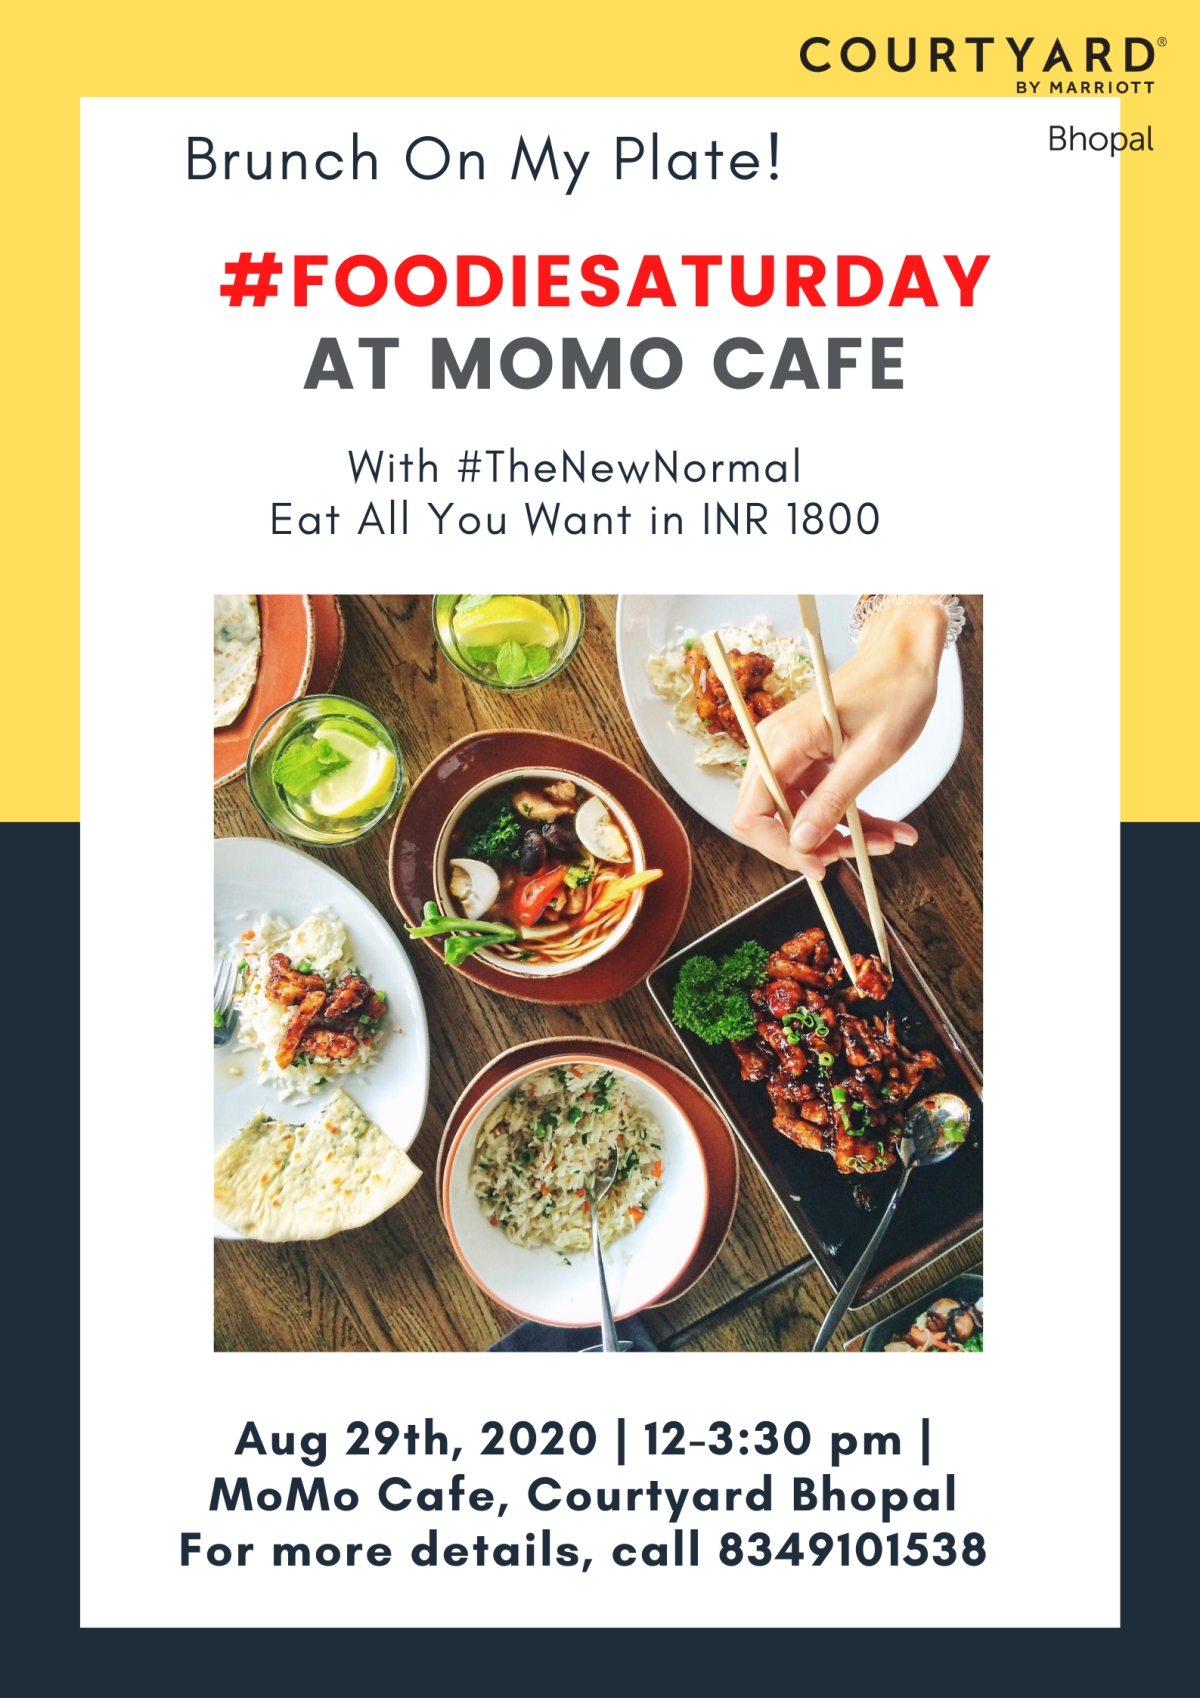 Bhopal: Want to enjoy lip-smacking Chinese and Mughlai Zayka? Join #FoodieSaturday by Courtyard by Marriott